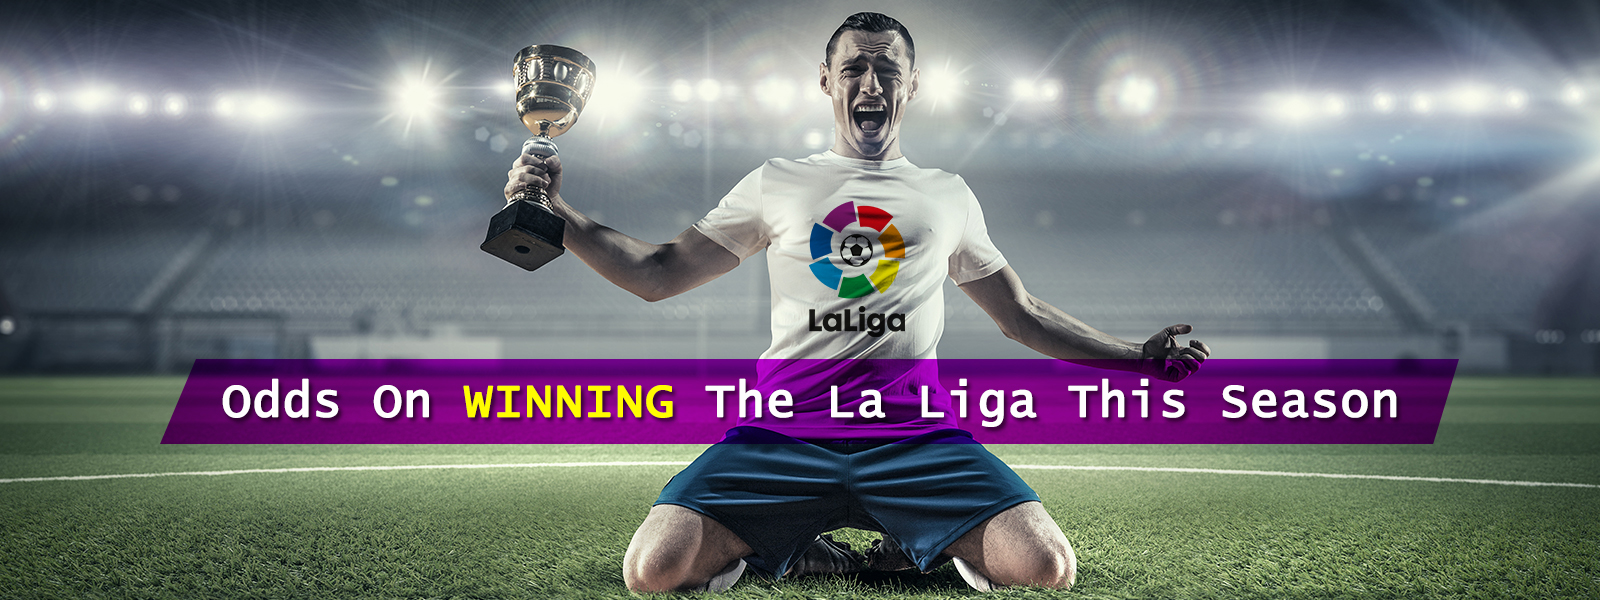 Odds On Winning The La Liga This Season